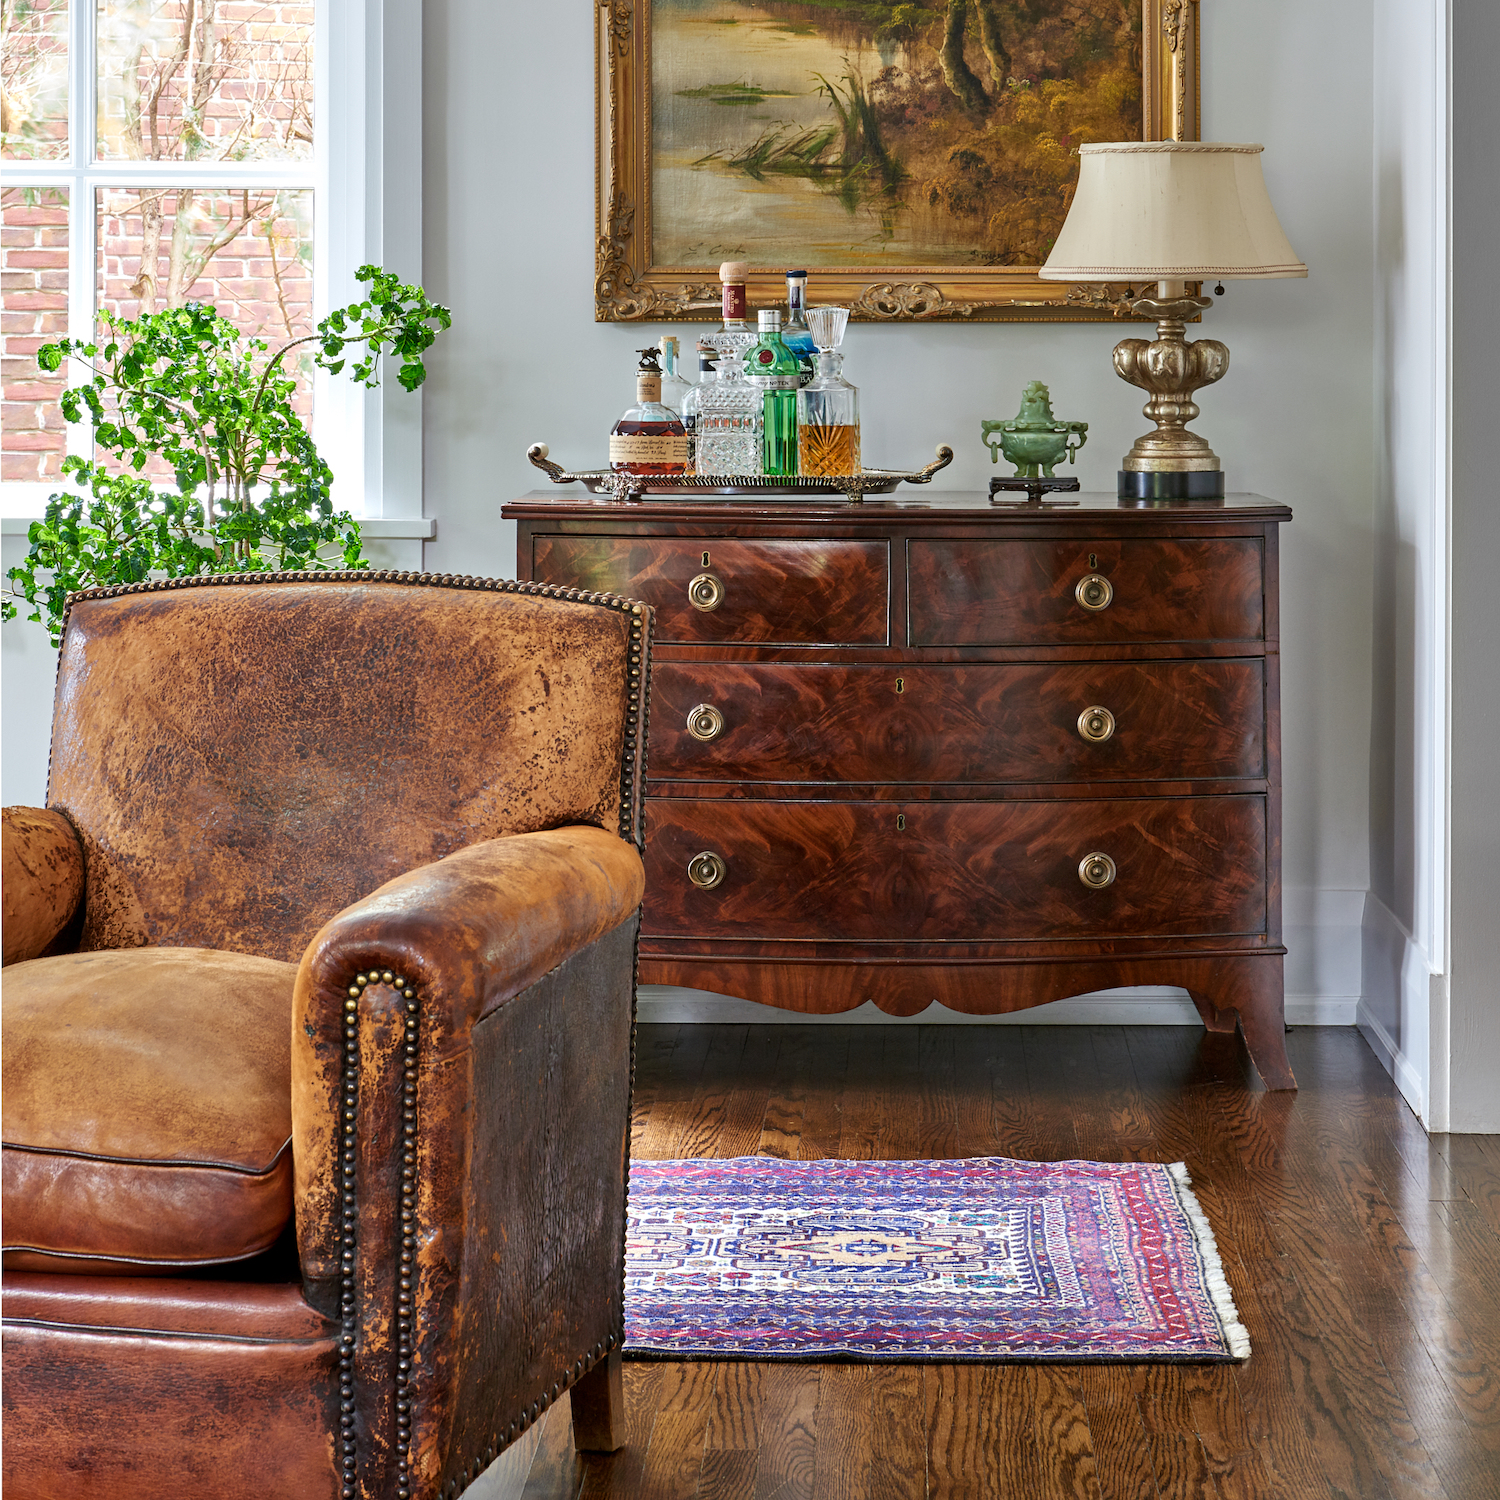 Why Buy Antique Furniture?